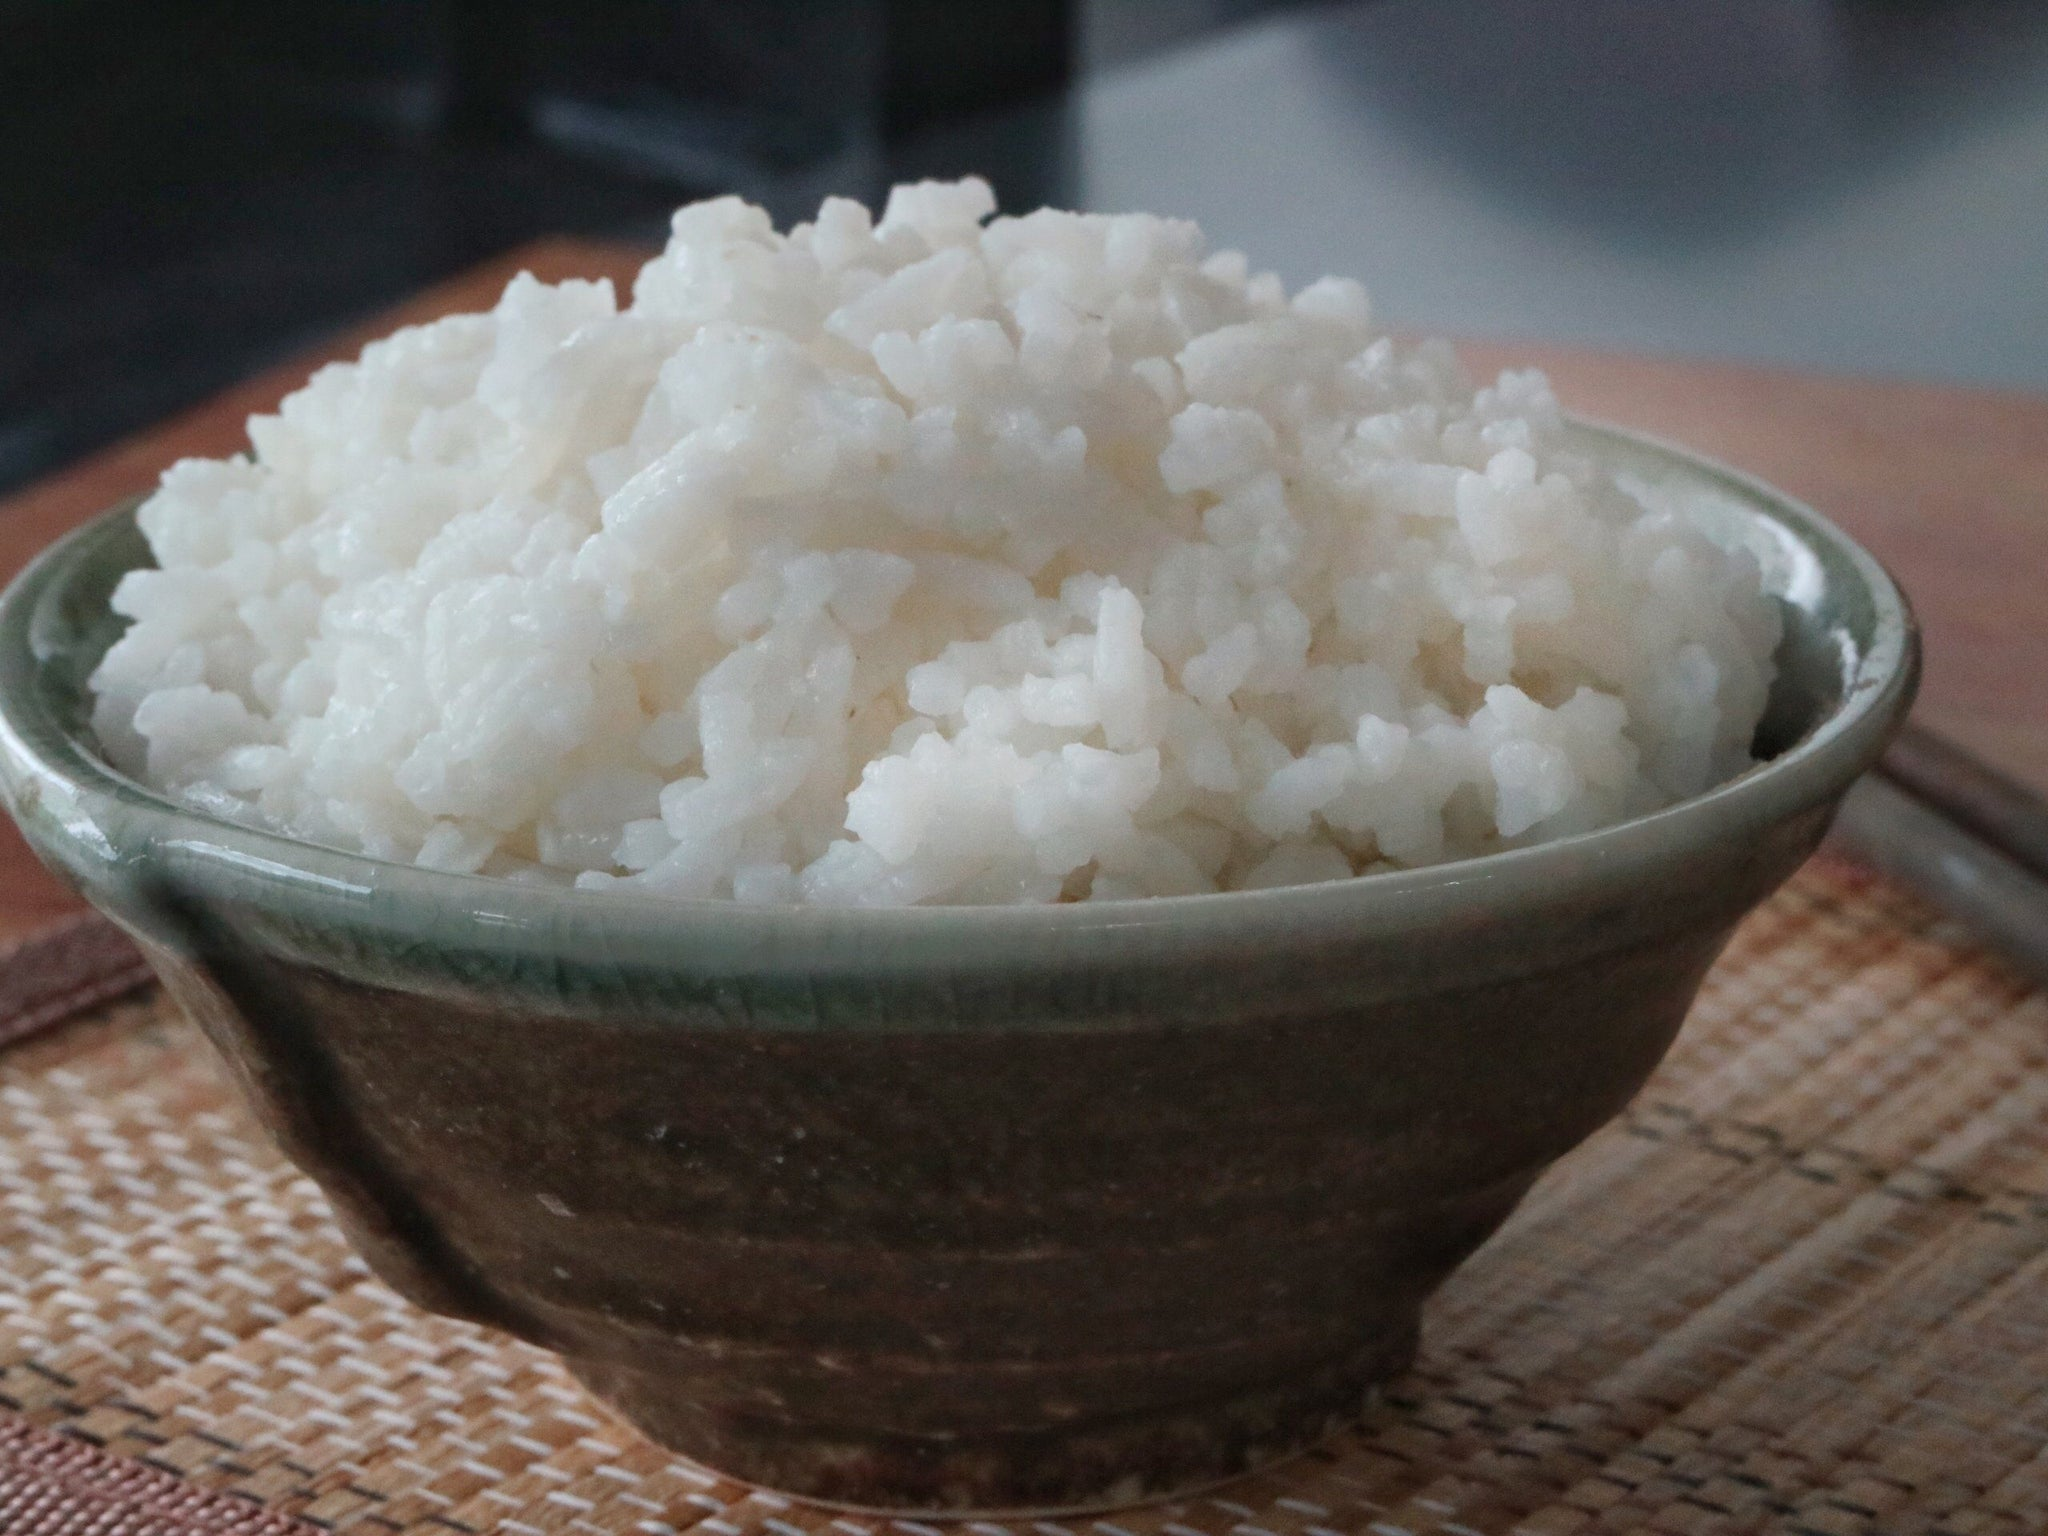 Carbo - Fragrant White Rice